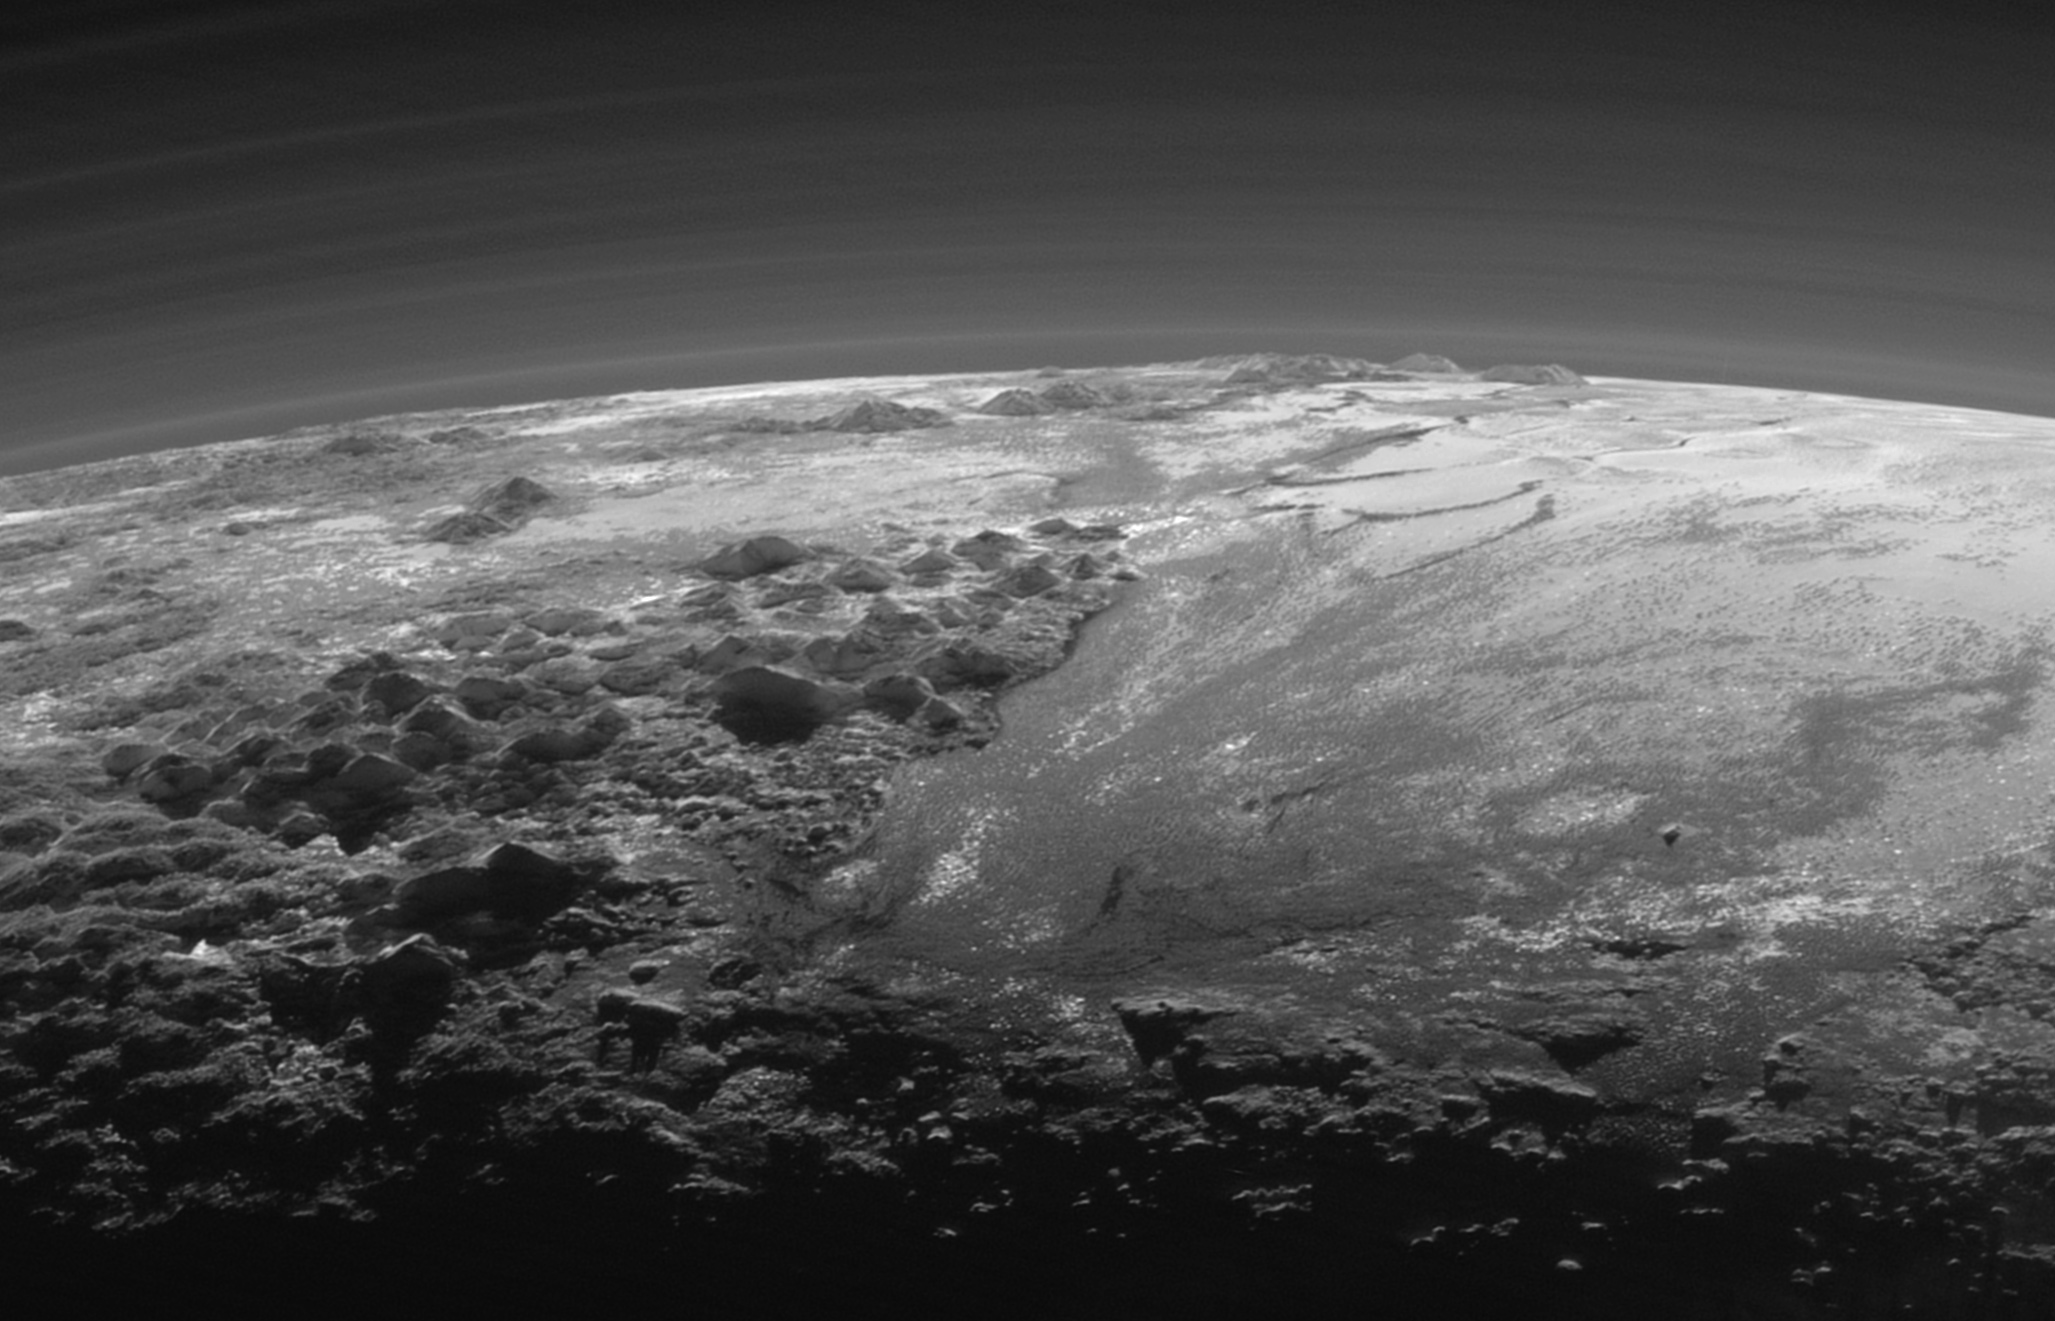 Pluto's mountains, frozen plains and foggy hazes